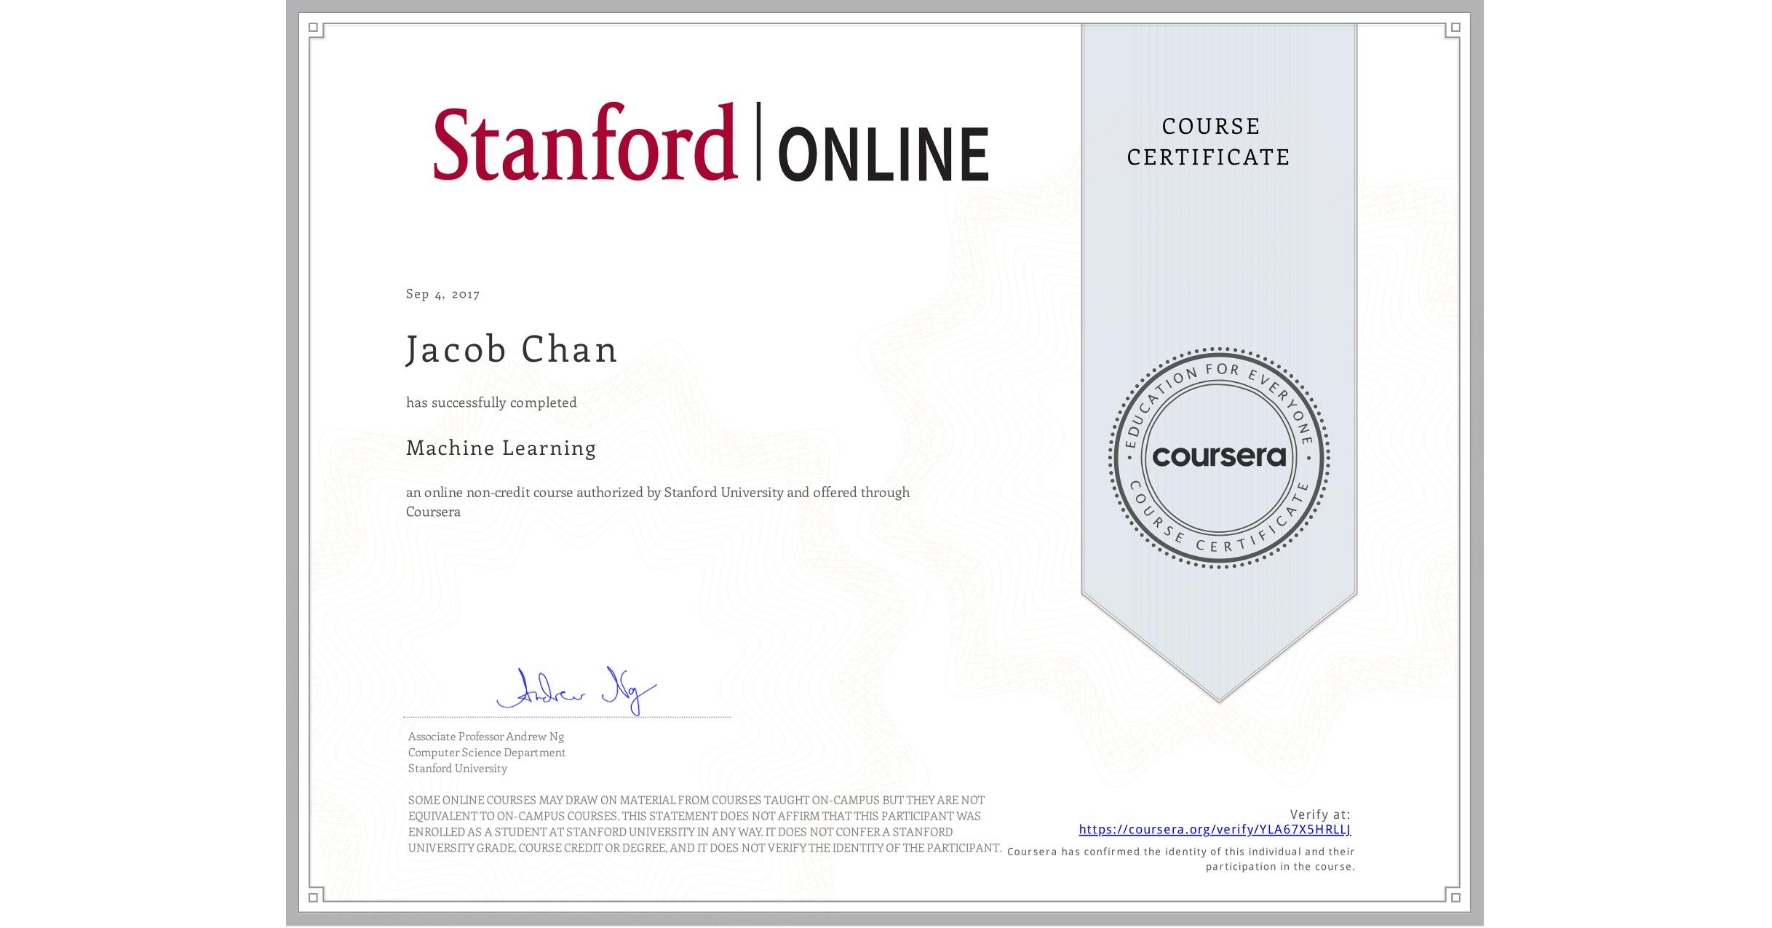 View certificate for Jacob Chan, Machine Learning, an online non-credit course authorized by Stanford University and offered through Coursera